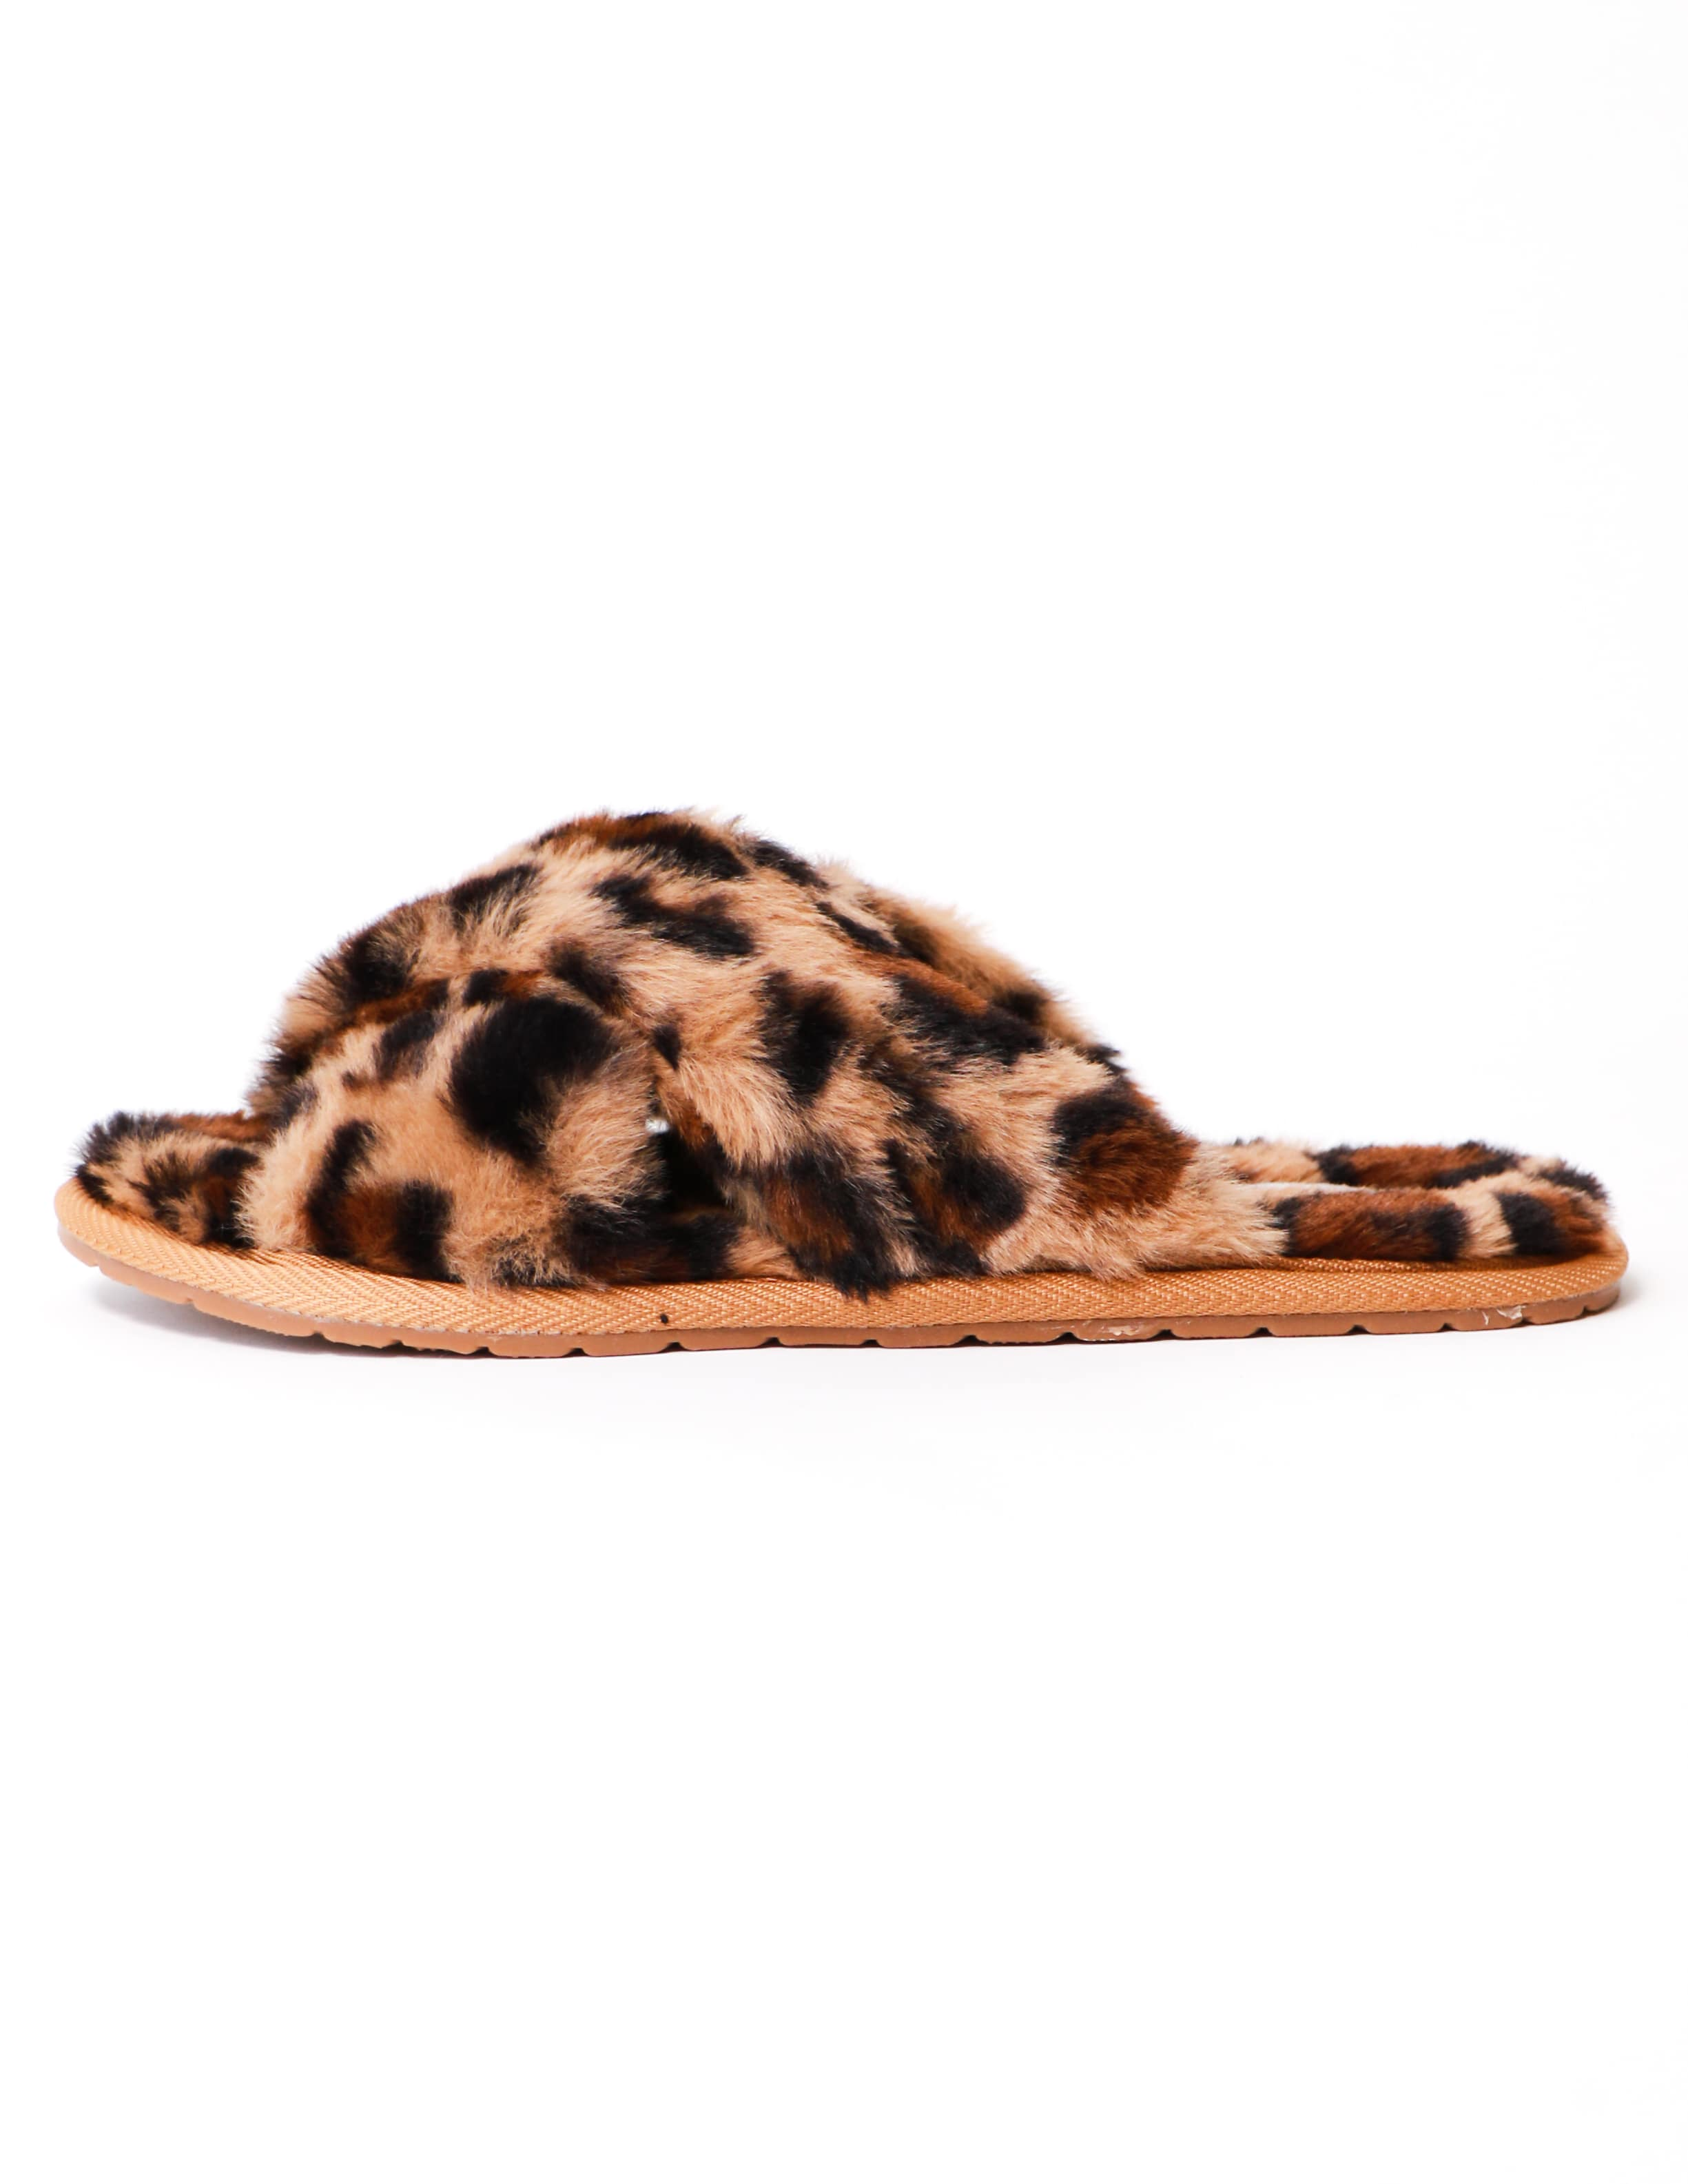 Leopard fur the dreamers slipper on white background - elle bleu shoes